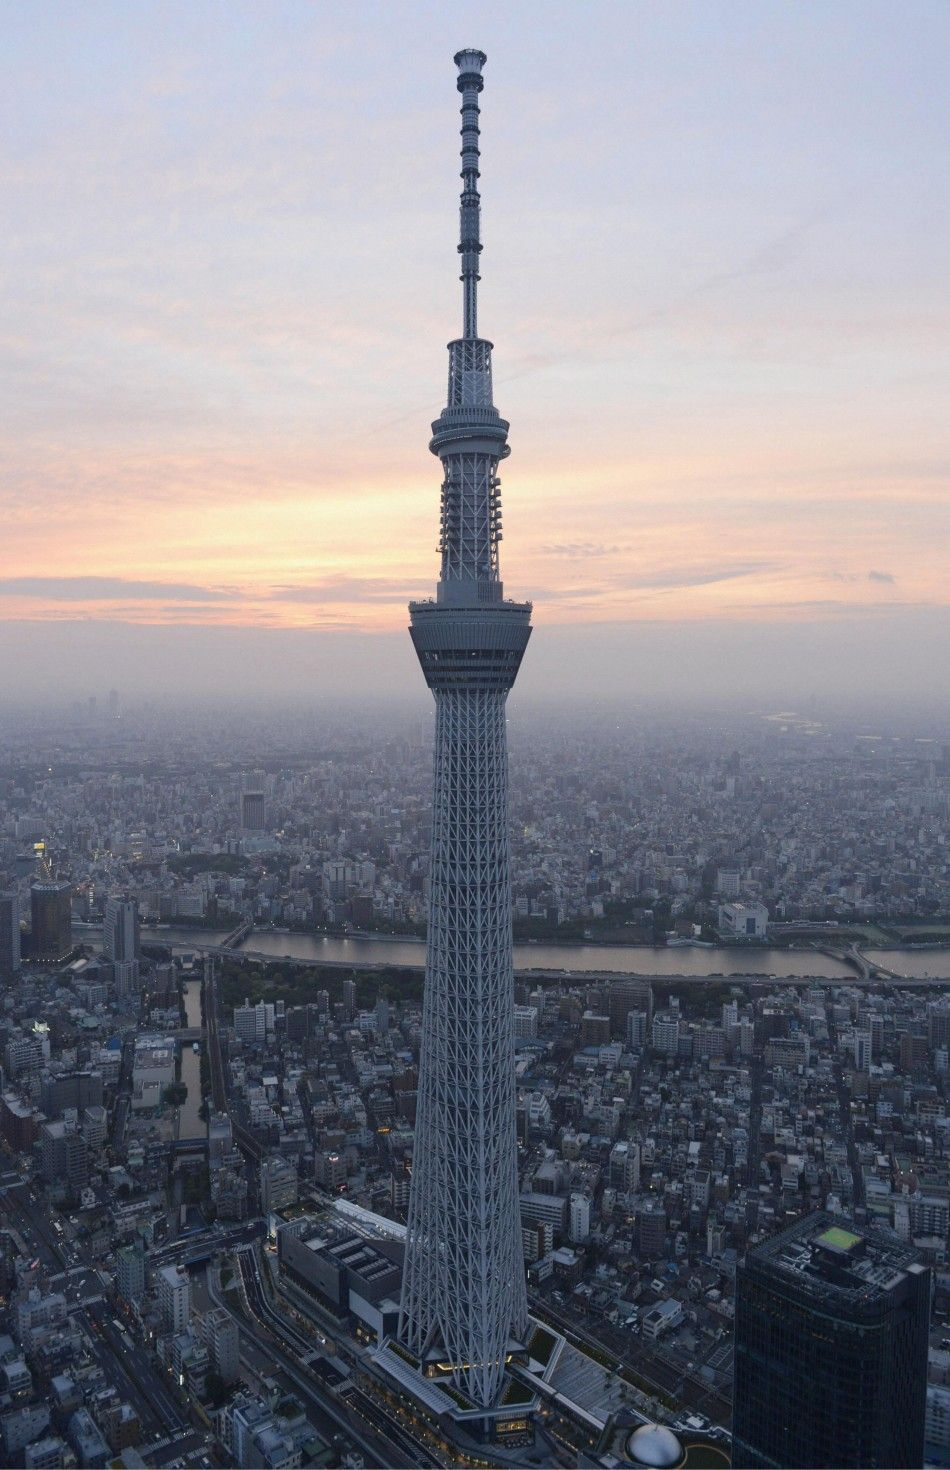 276437 Tokyo Skytree World S Tallest Tower Opens Jpg 950 1 470 Pixel Feel Architecture Living Pinterest Tokyo Chang E 3 And See You